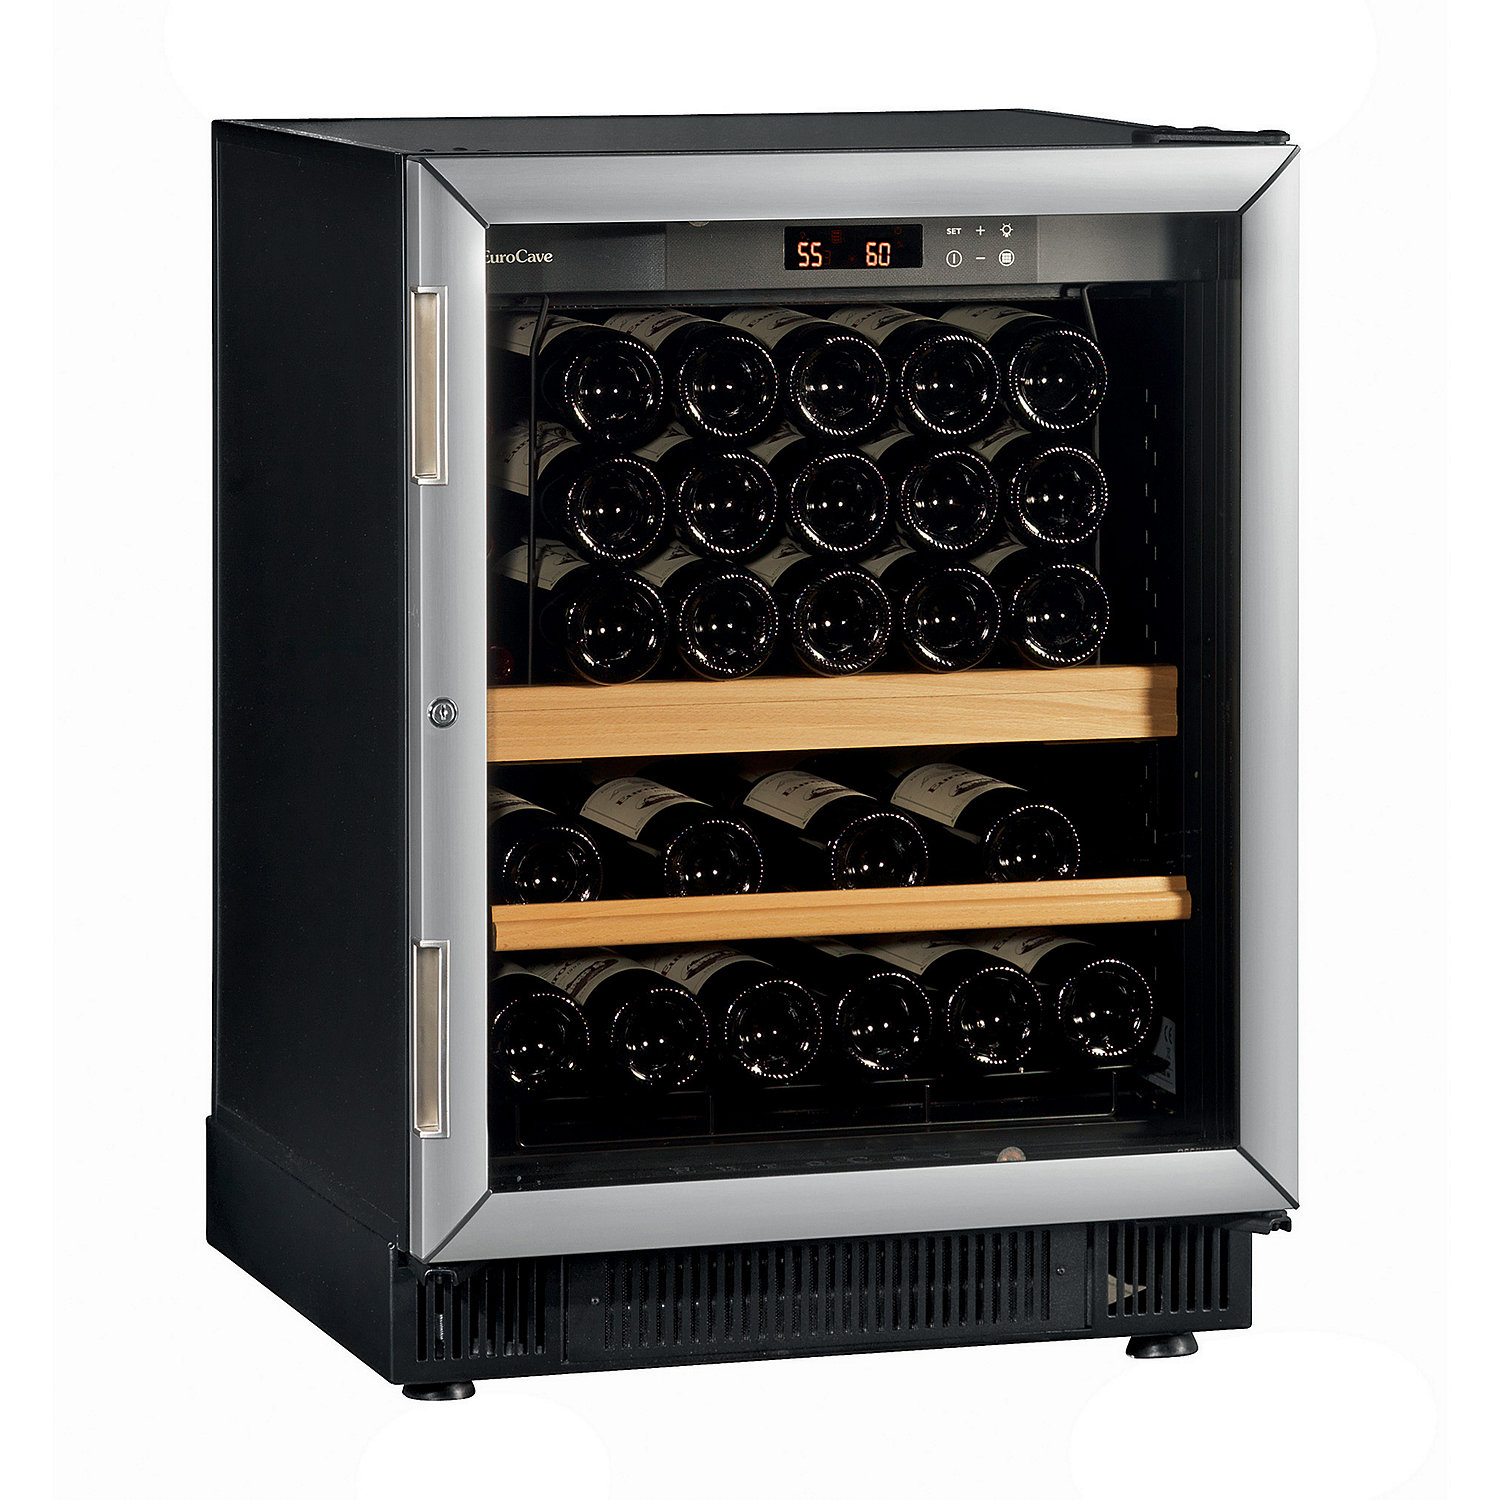 Eurocave | Eurocave Filter | Vinotheque Wine Storage